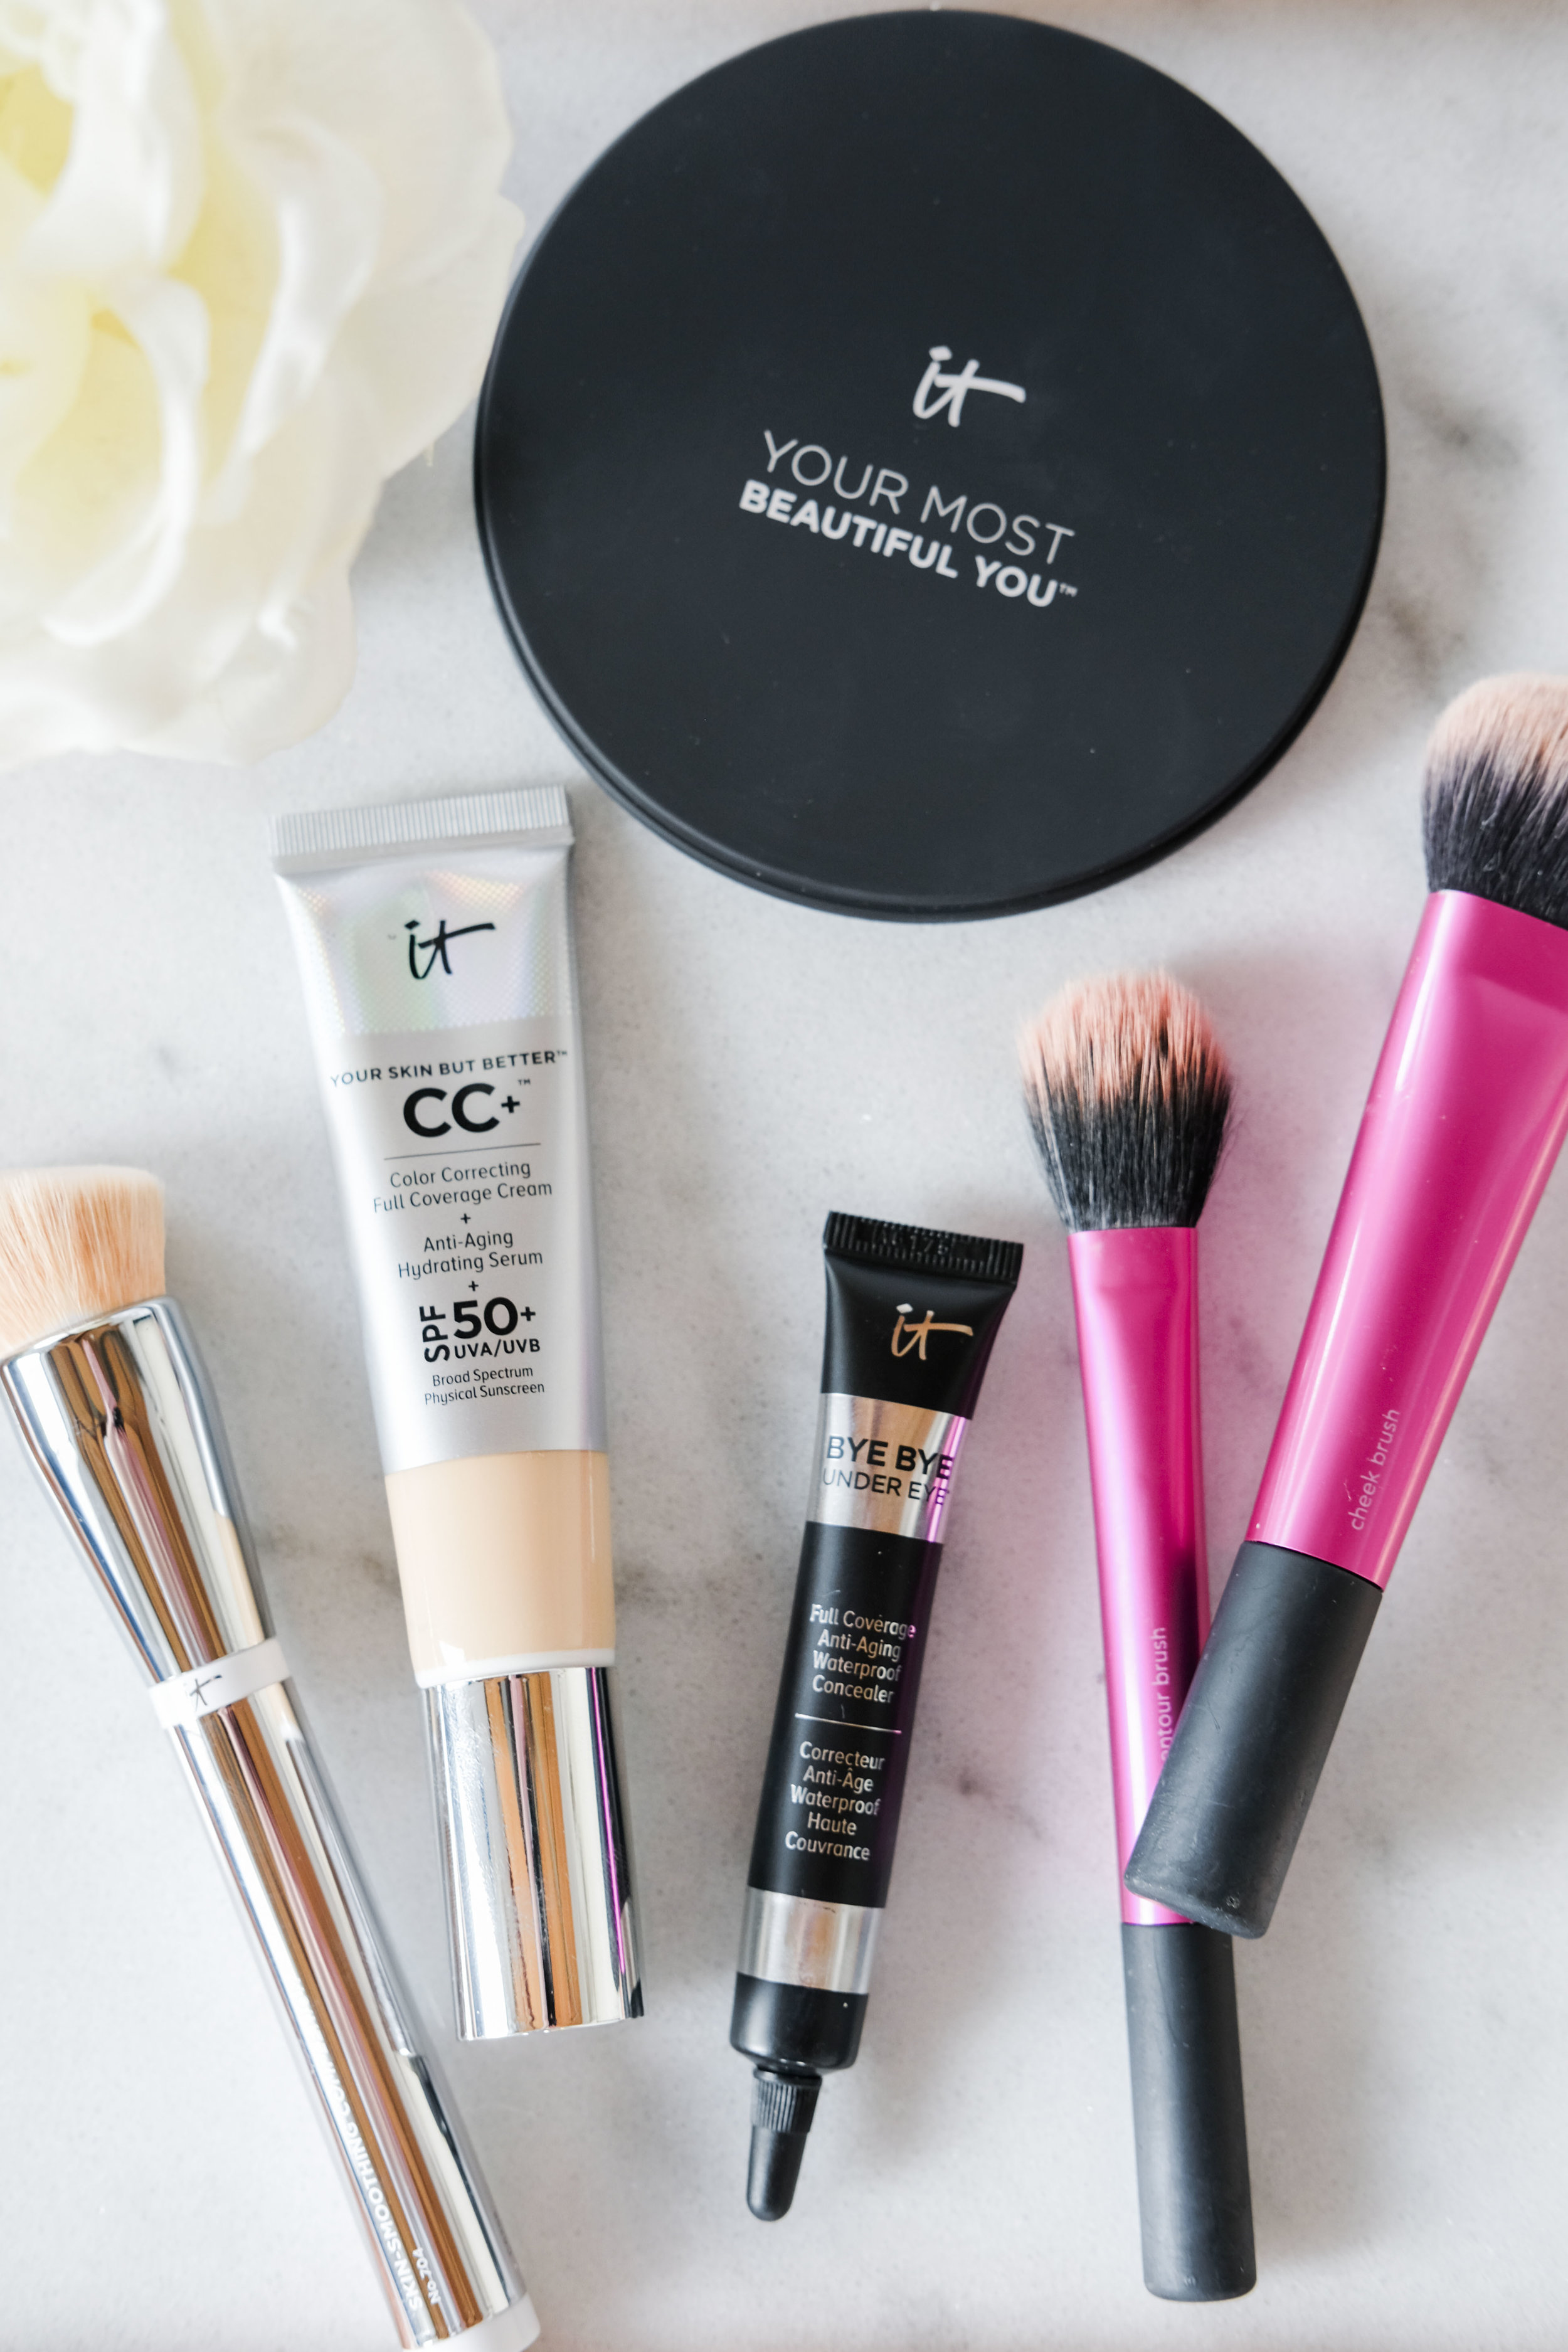 Easy natural makeup look perfect for vacation, spf 50 full coverage cc cream, It Cosmetics Bye Bye Under Eye.